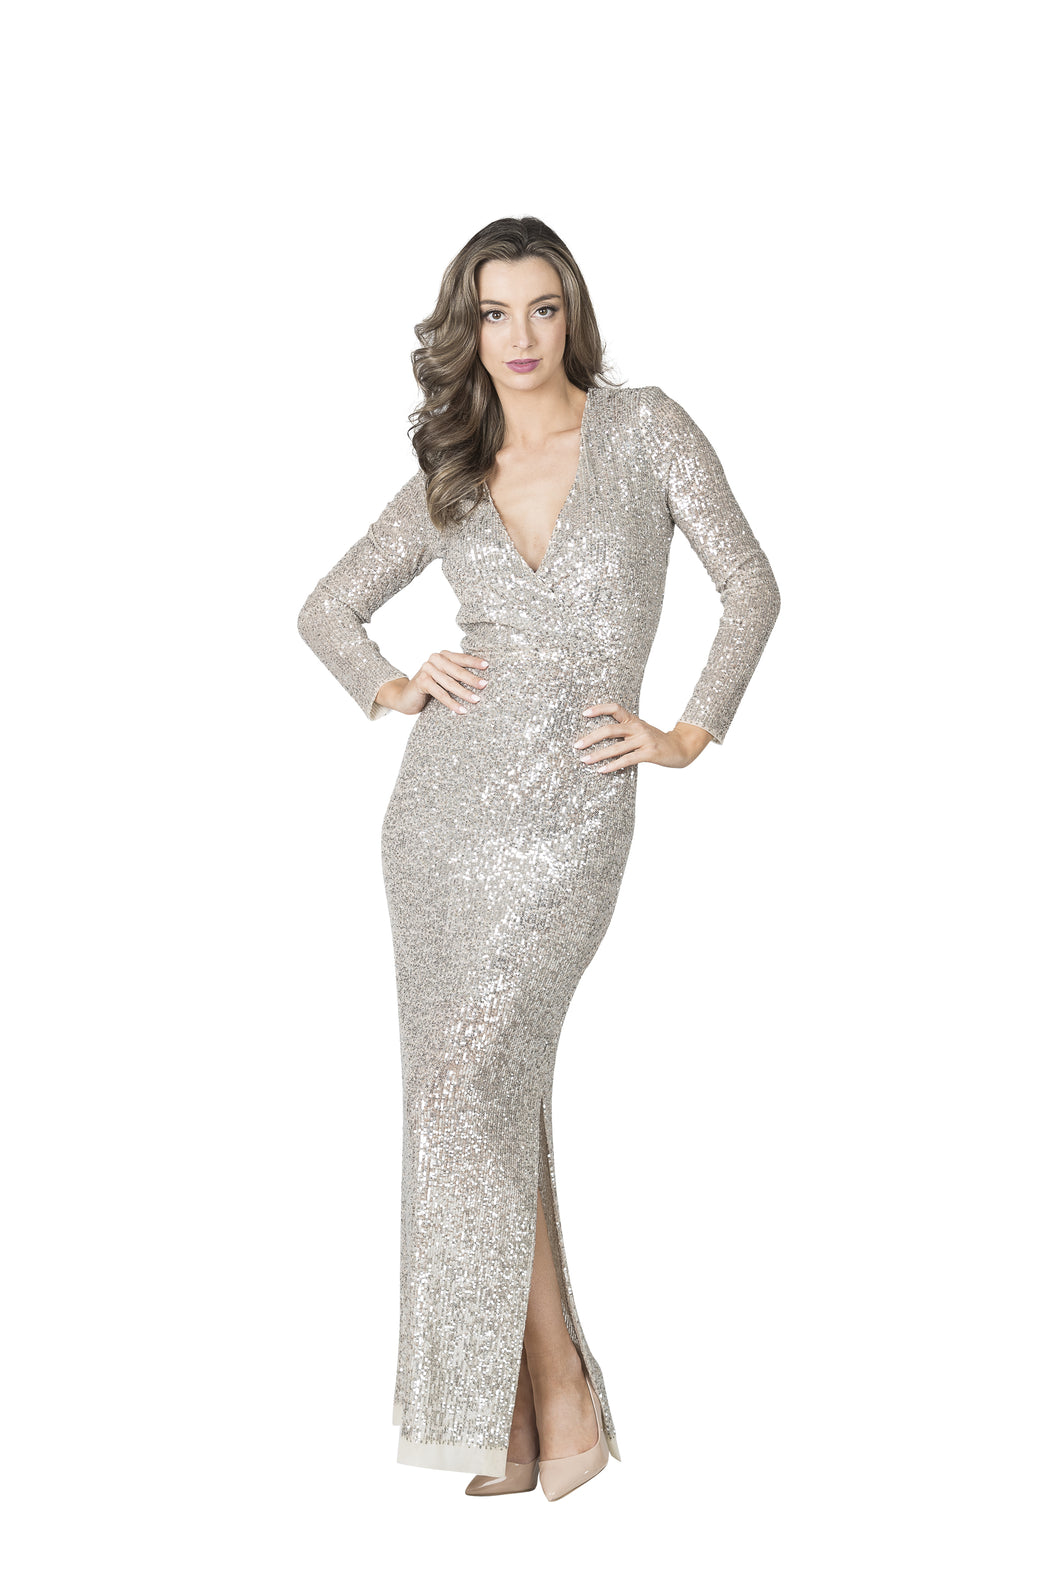 Lisa Barron Hollywood Wrap Sequin Gown - Silver